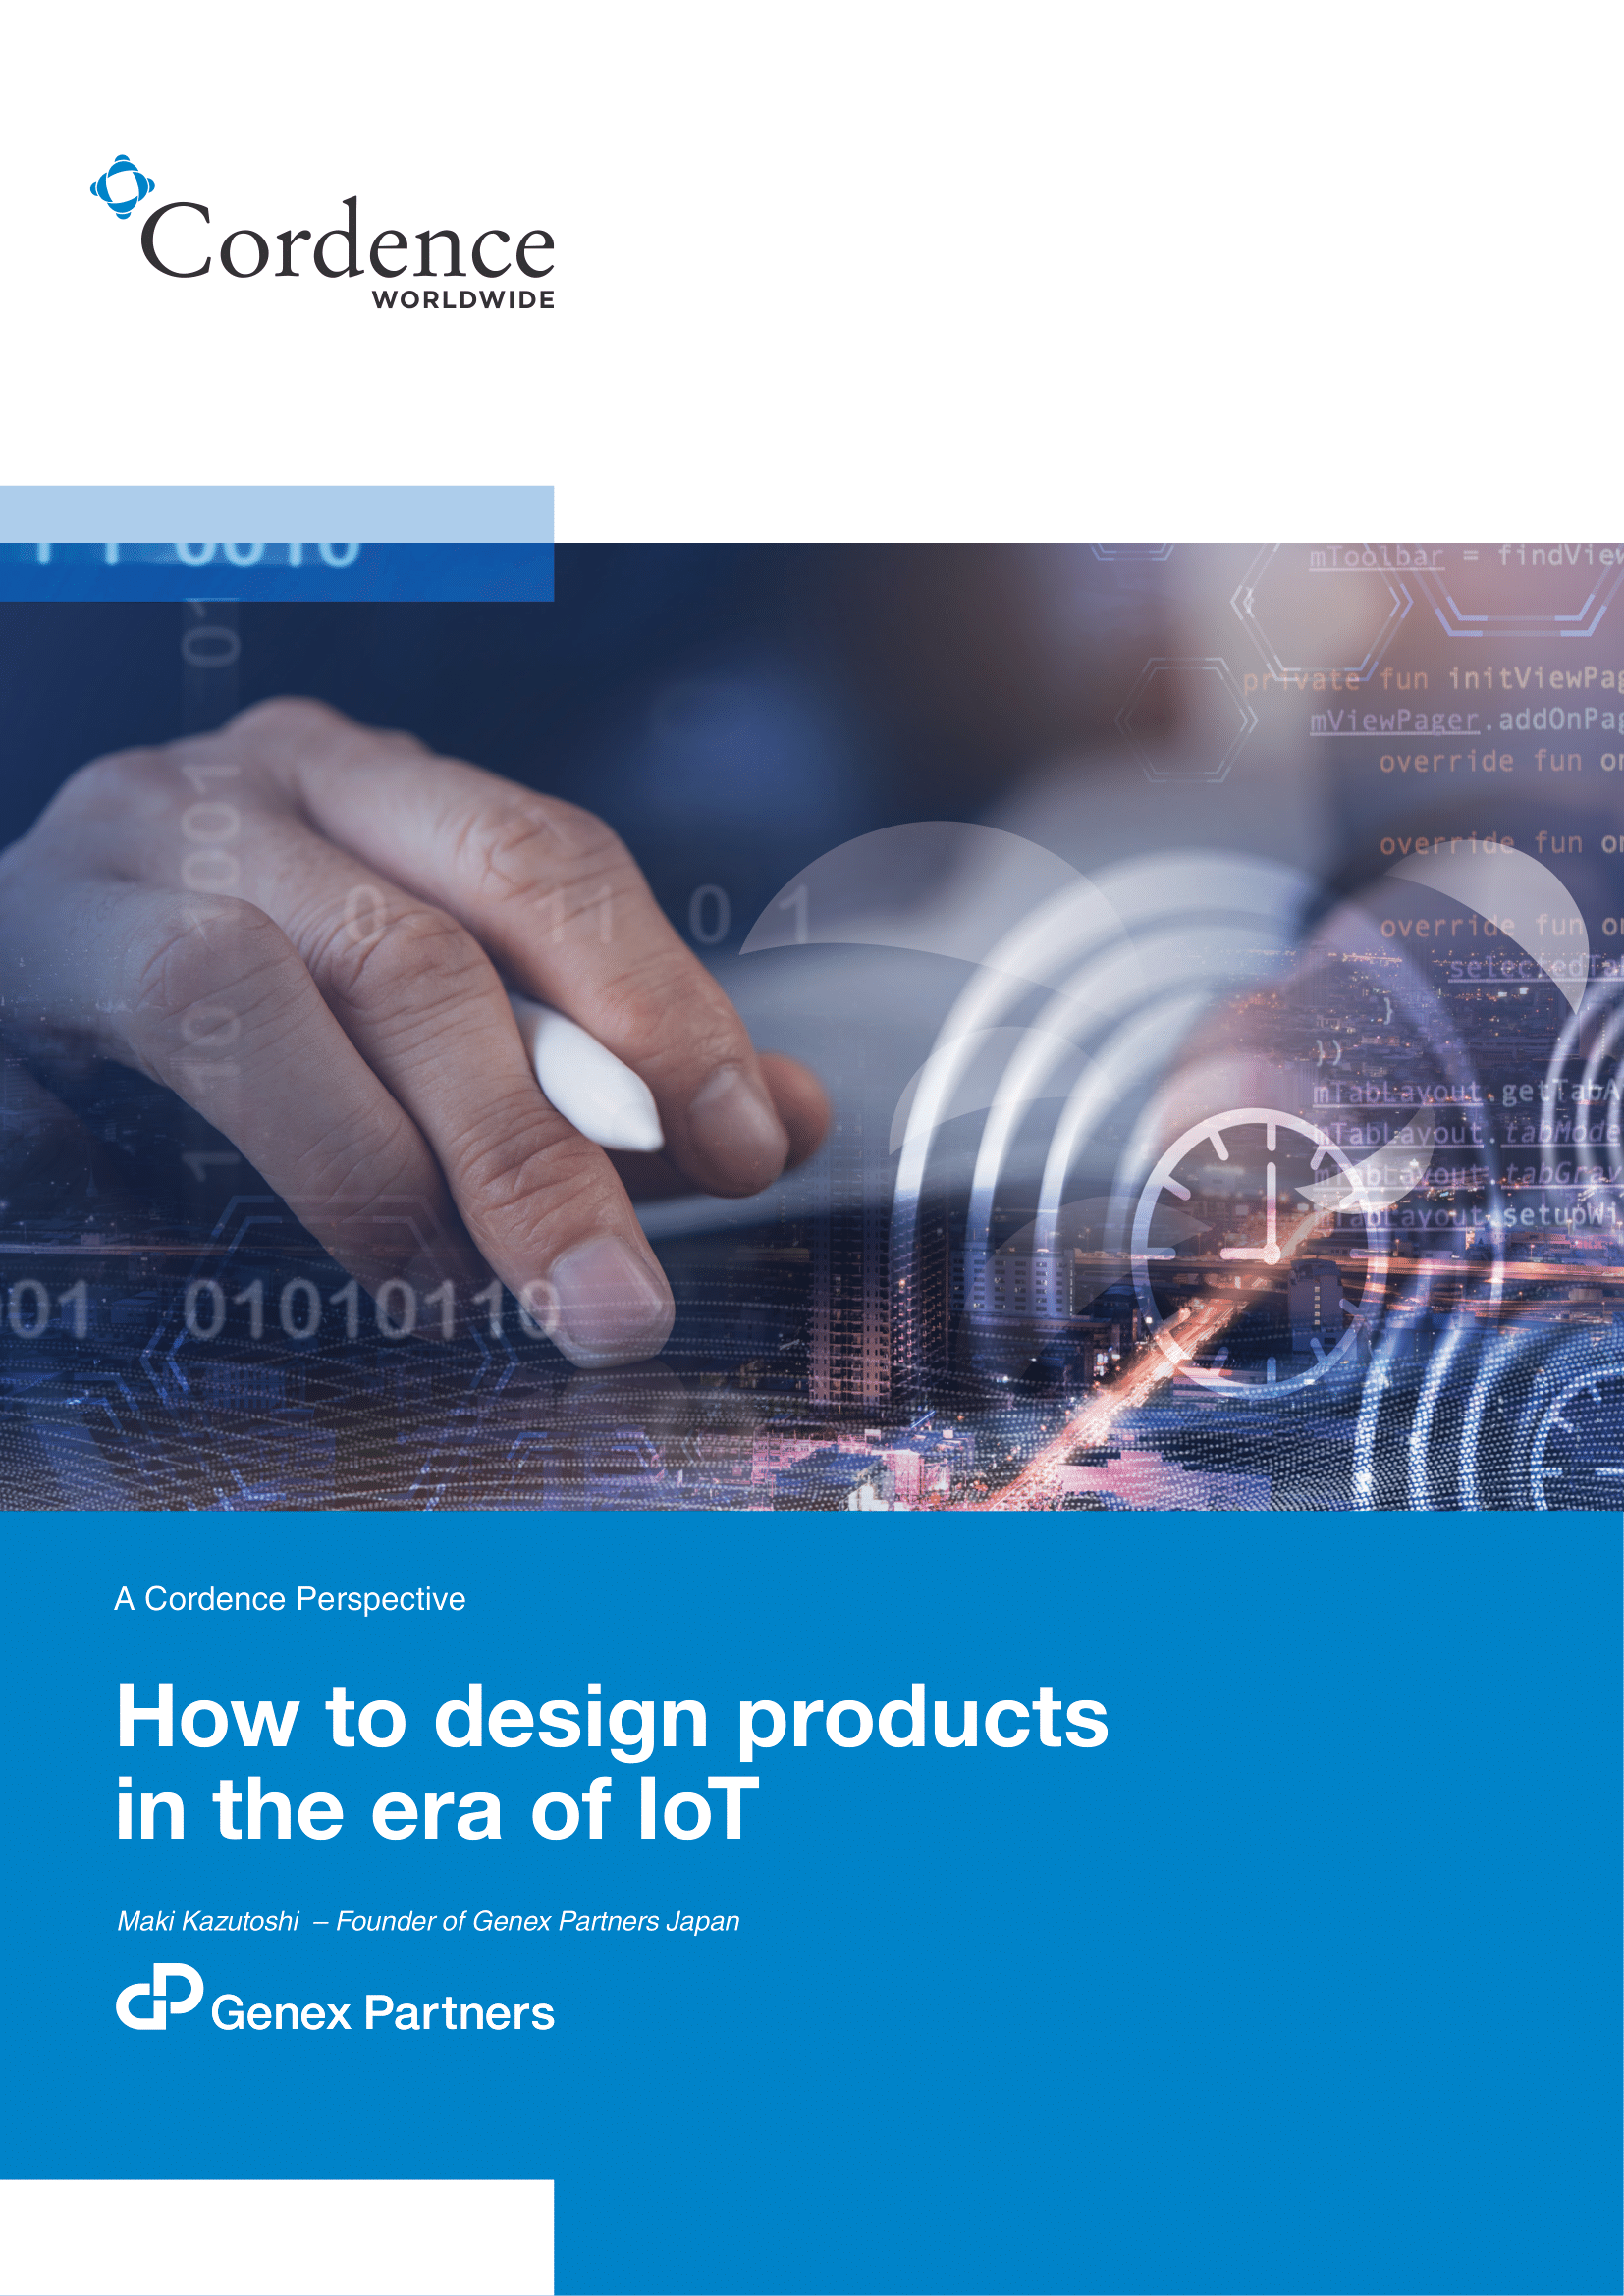 How to Design Products in the Era of IoT-1.png